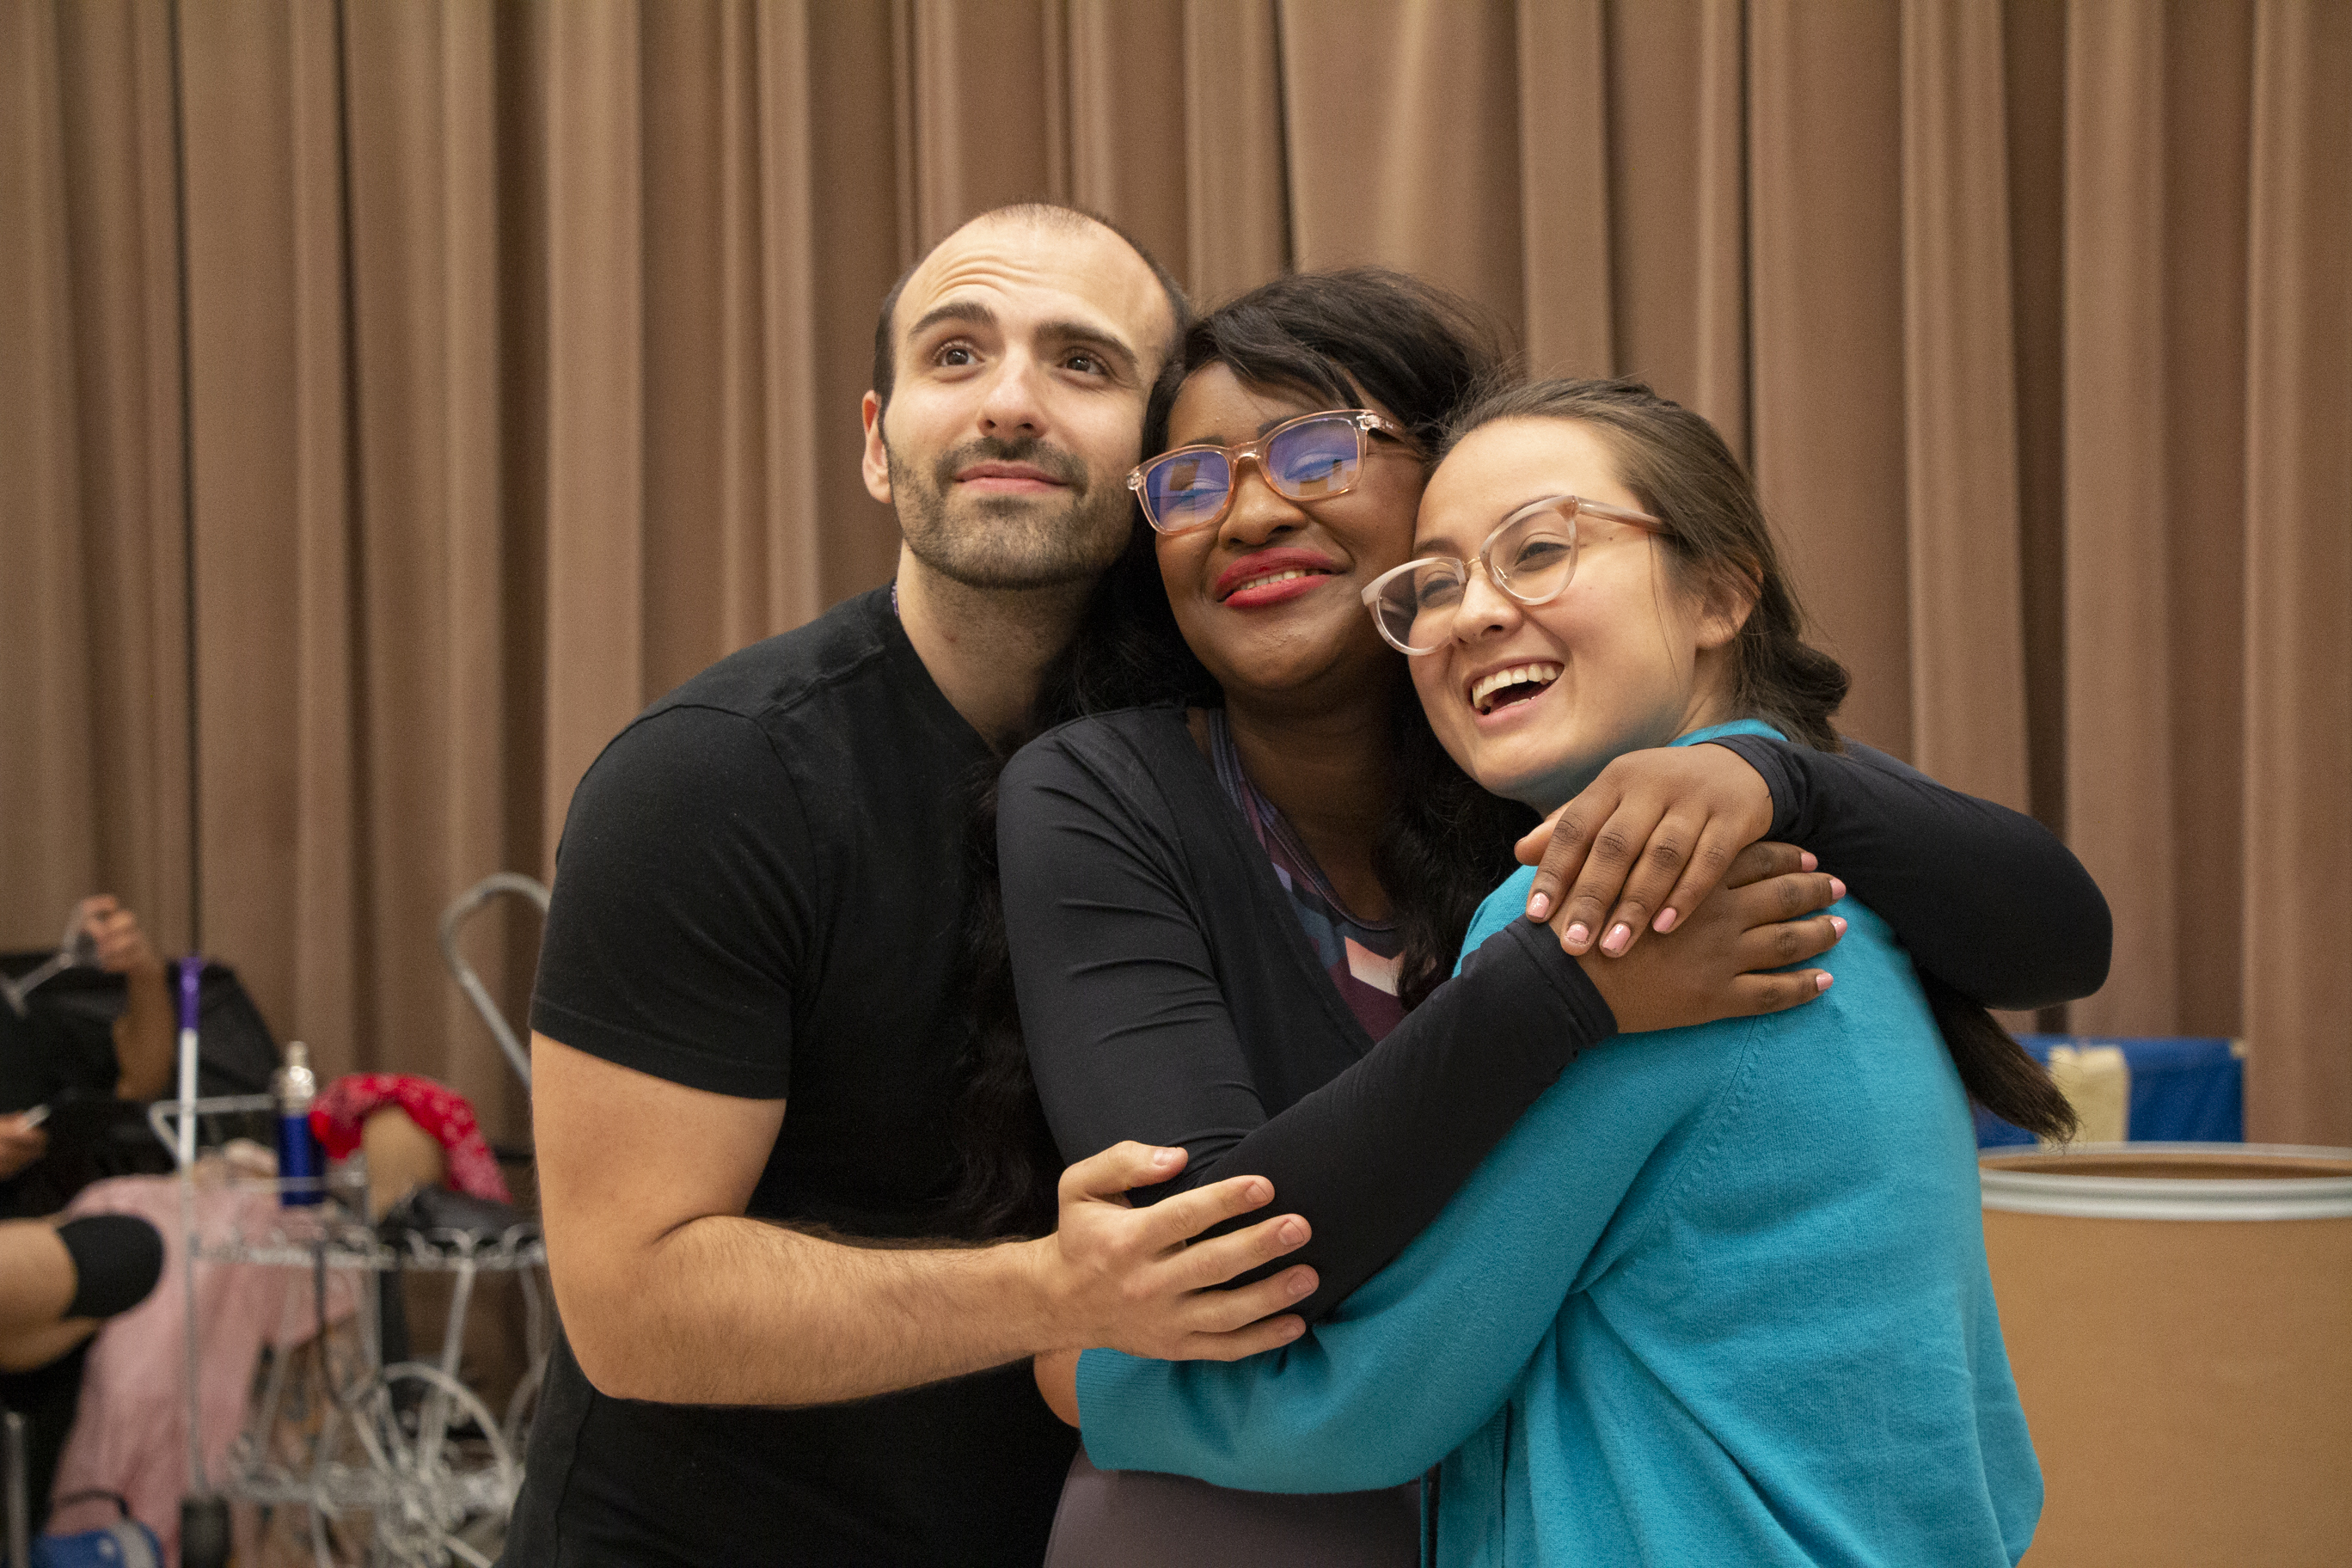 Three cast members embrace while rehearsing opera